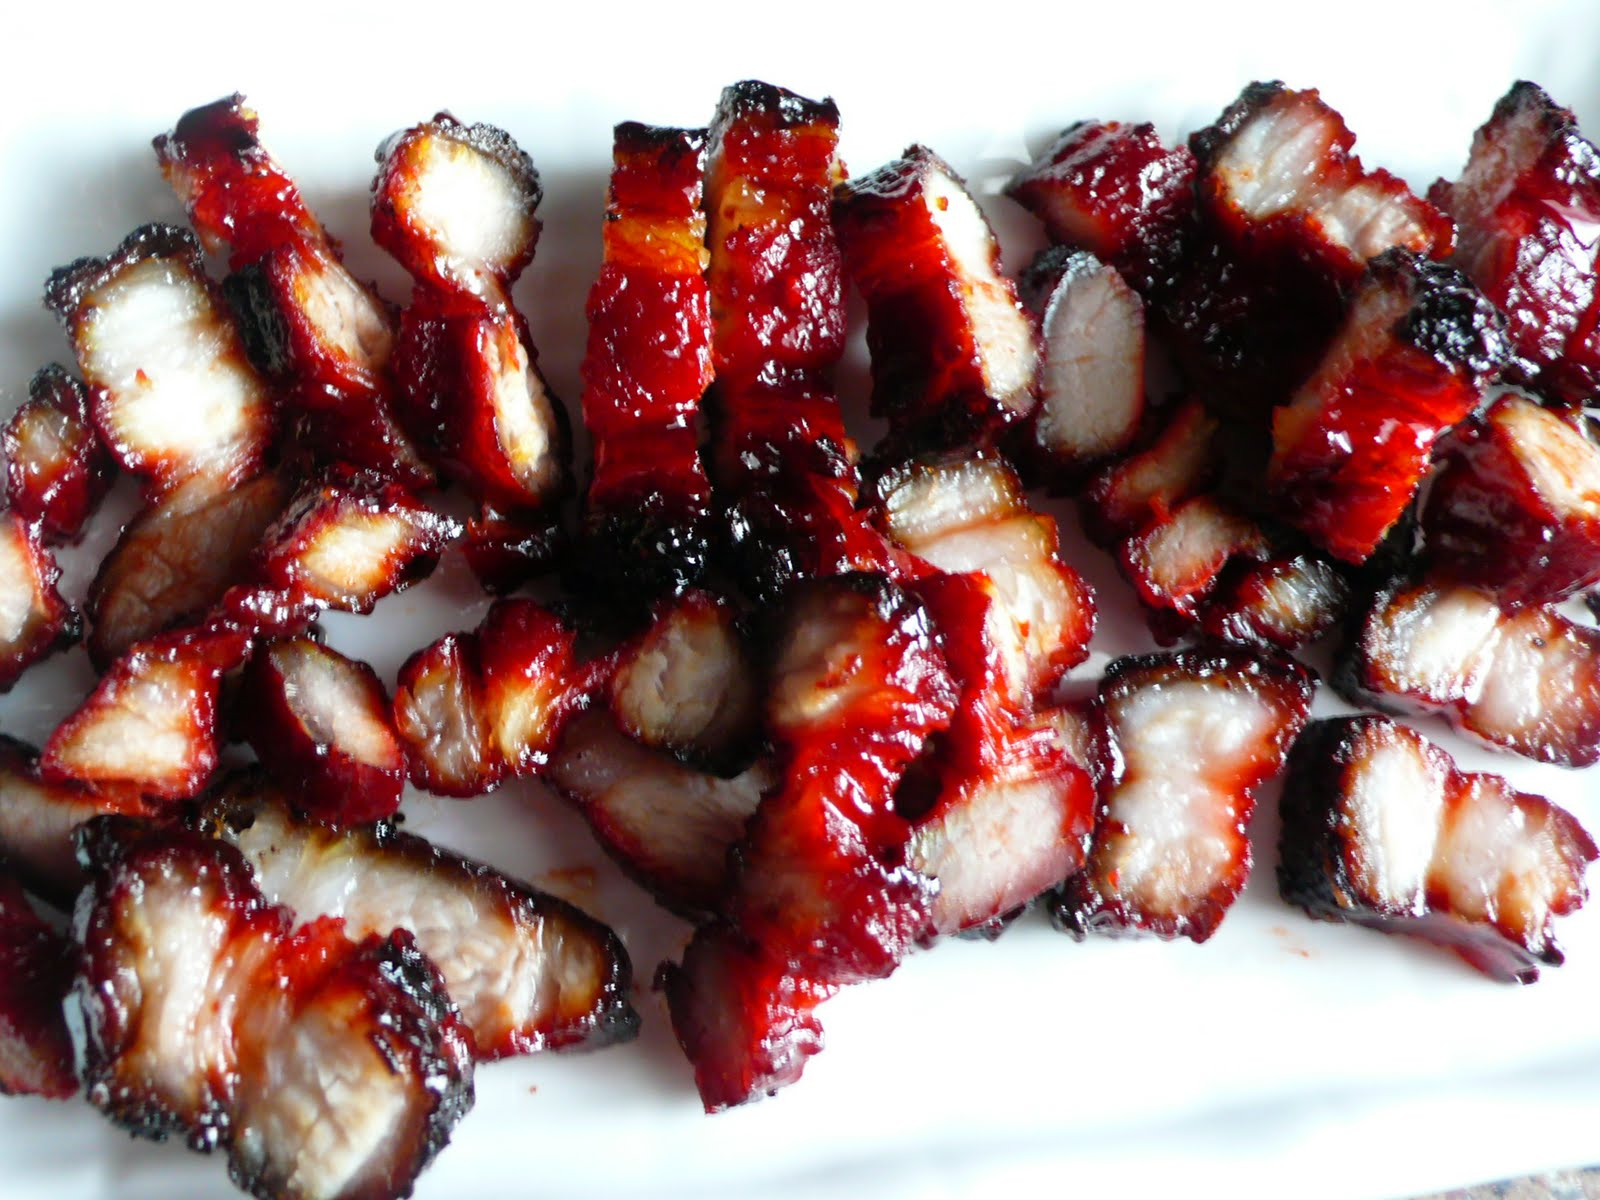 Recipe of the Week: Char Sui (Chinese BBQ Pork)